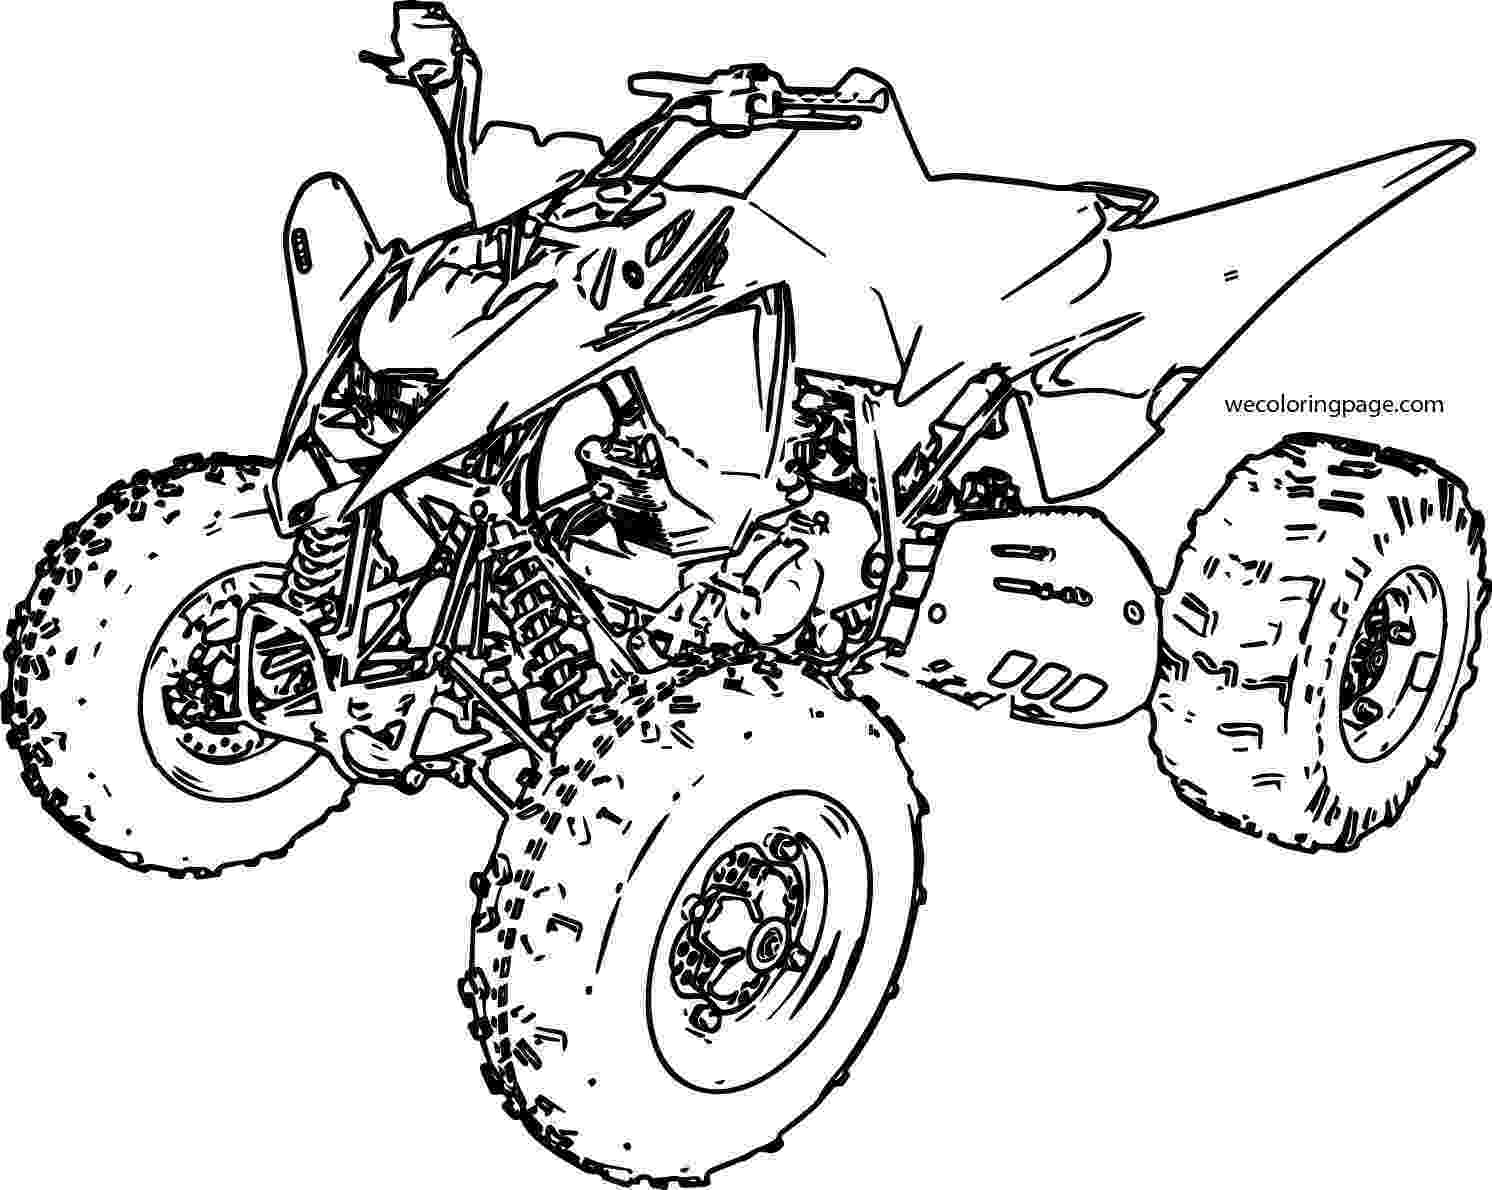 colouring pages quad bikes coloriage moto cross ktm coloriages à imprimer gratuits pages colouring quad bikes